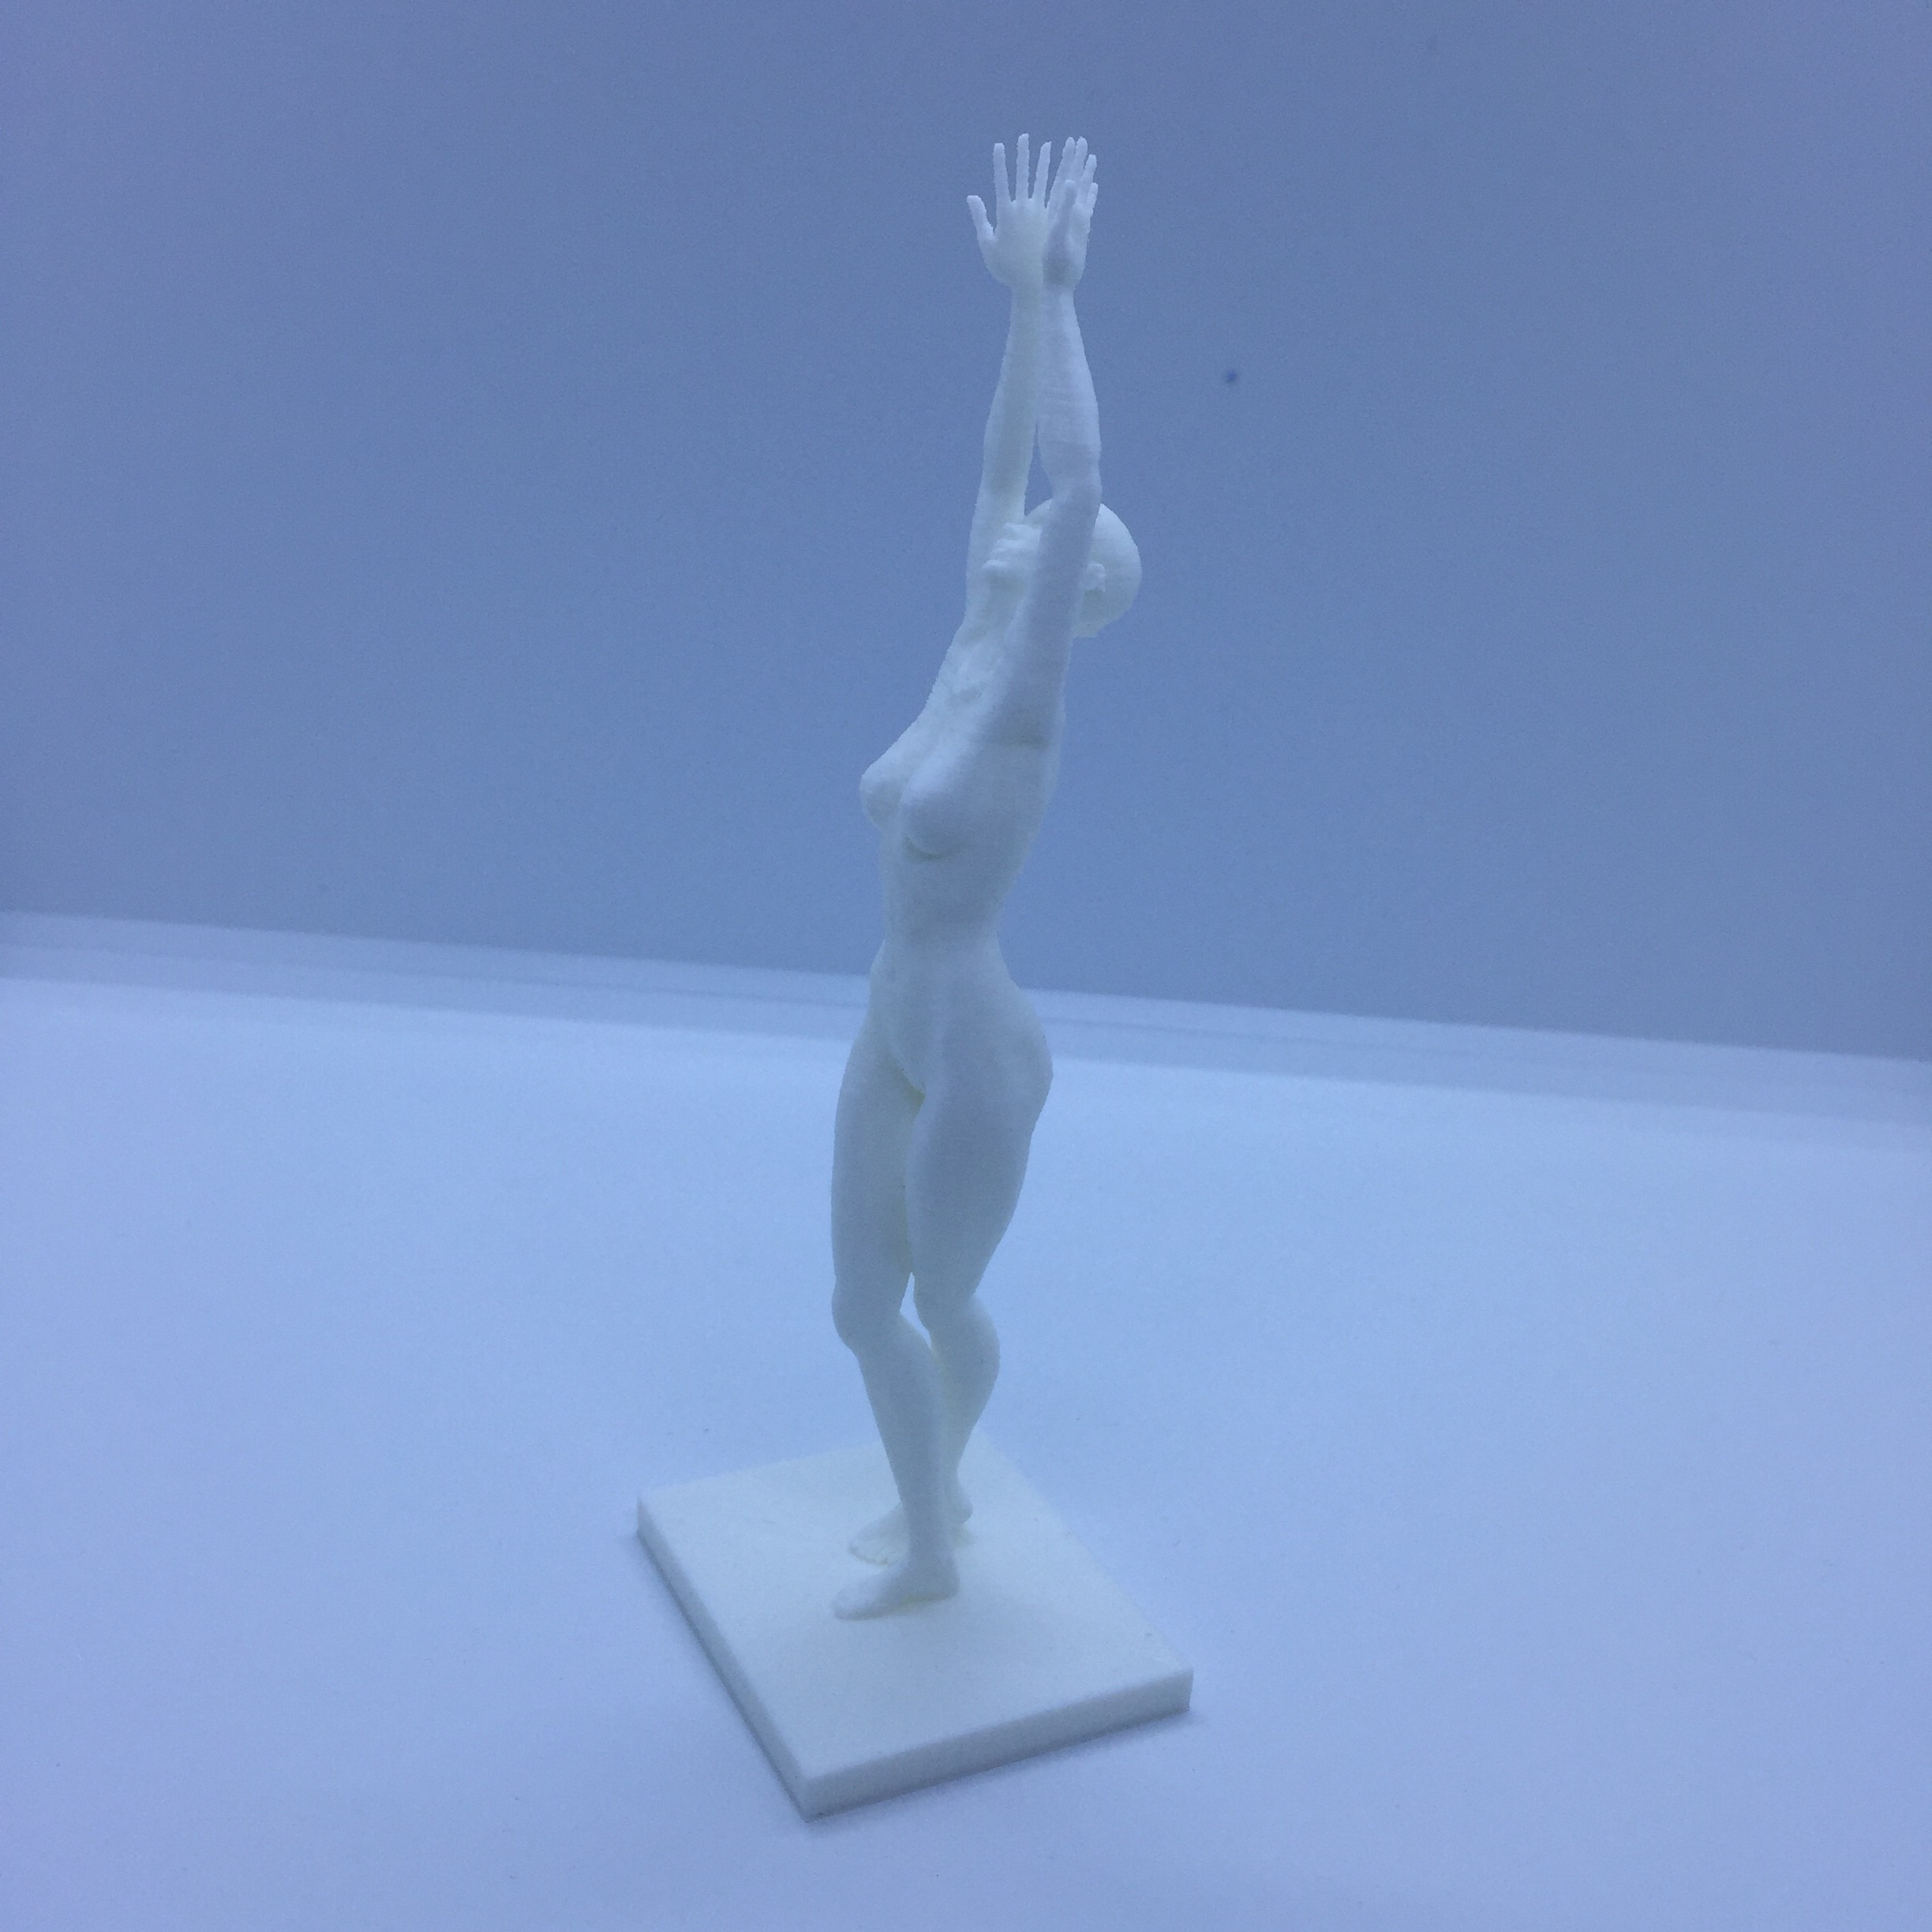 IMG_1984.JPG Download STL file dancer • 3D printer model, juanpix